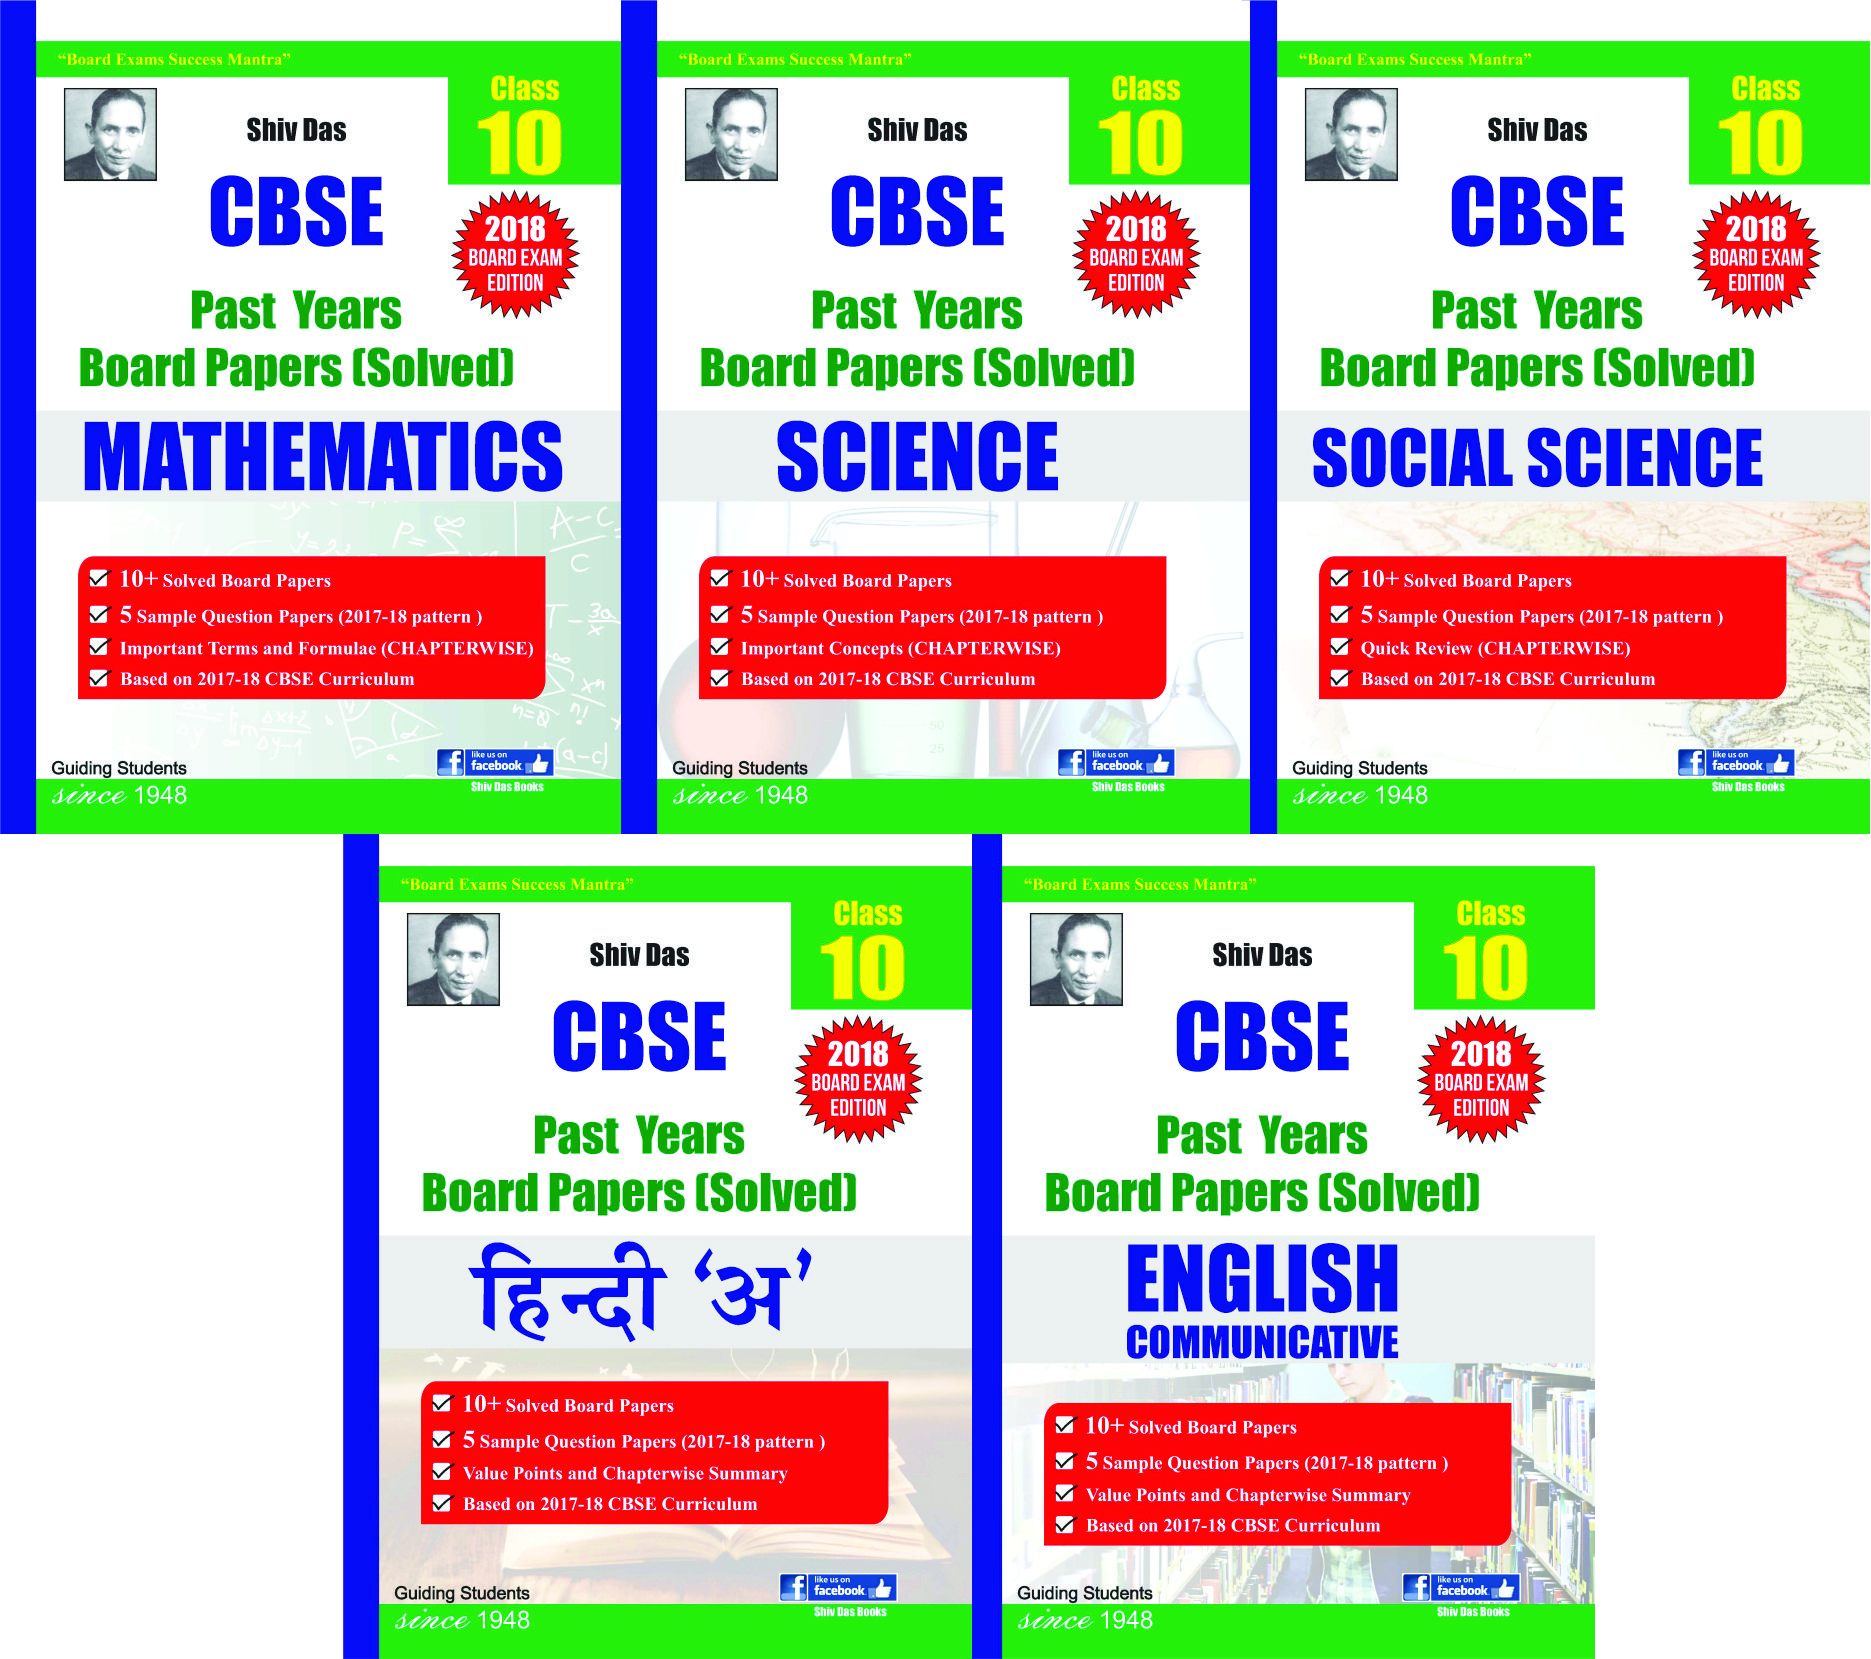 CBSE Past Years Solved Board Papers For Class 10 Hindi-A English Language & Literature Mathematics Science Social Science For 2018 Exam